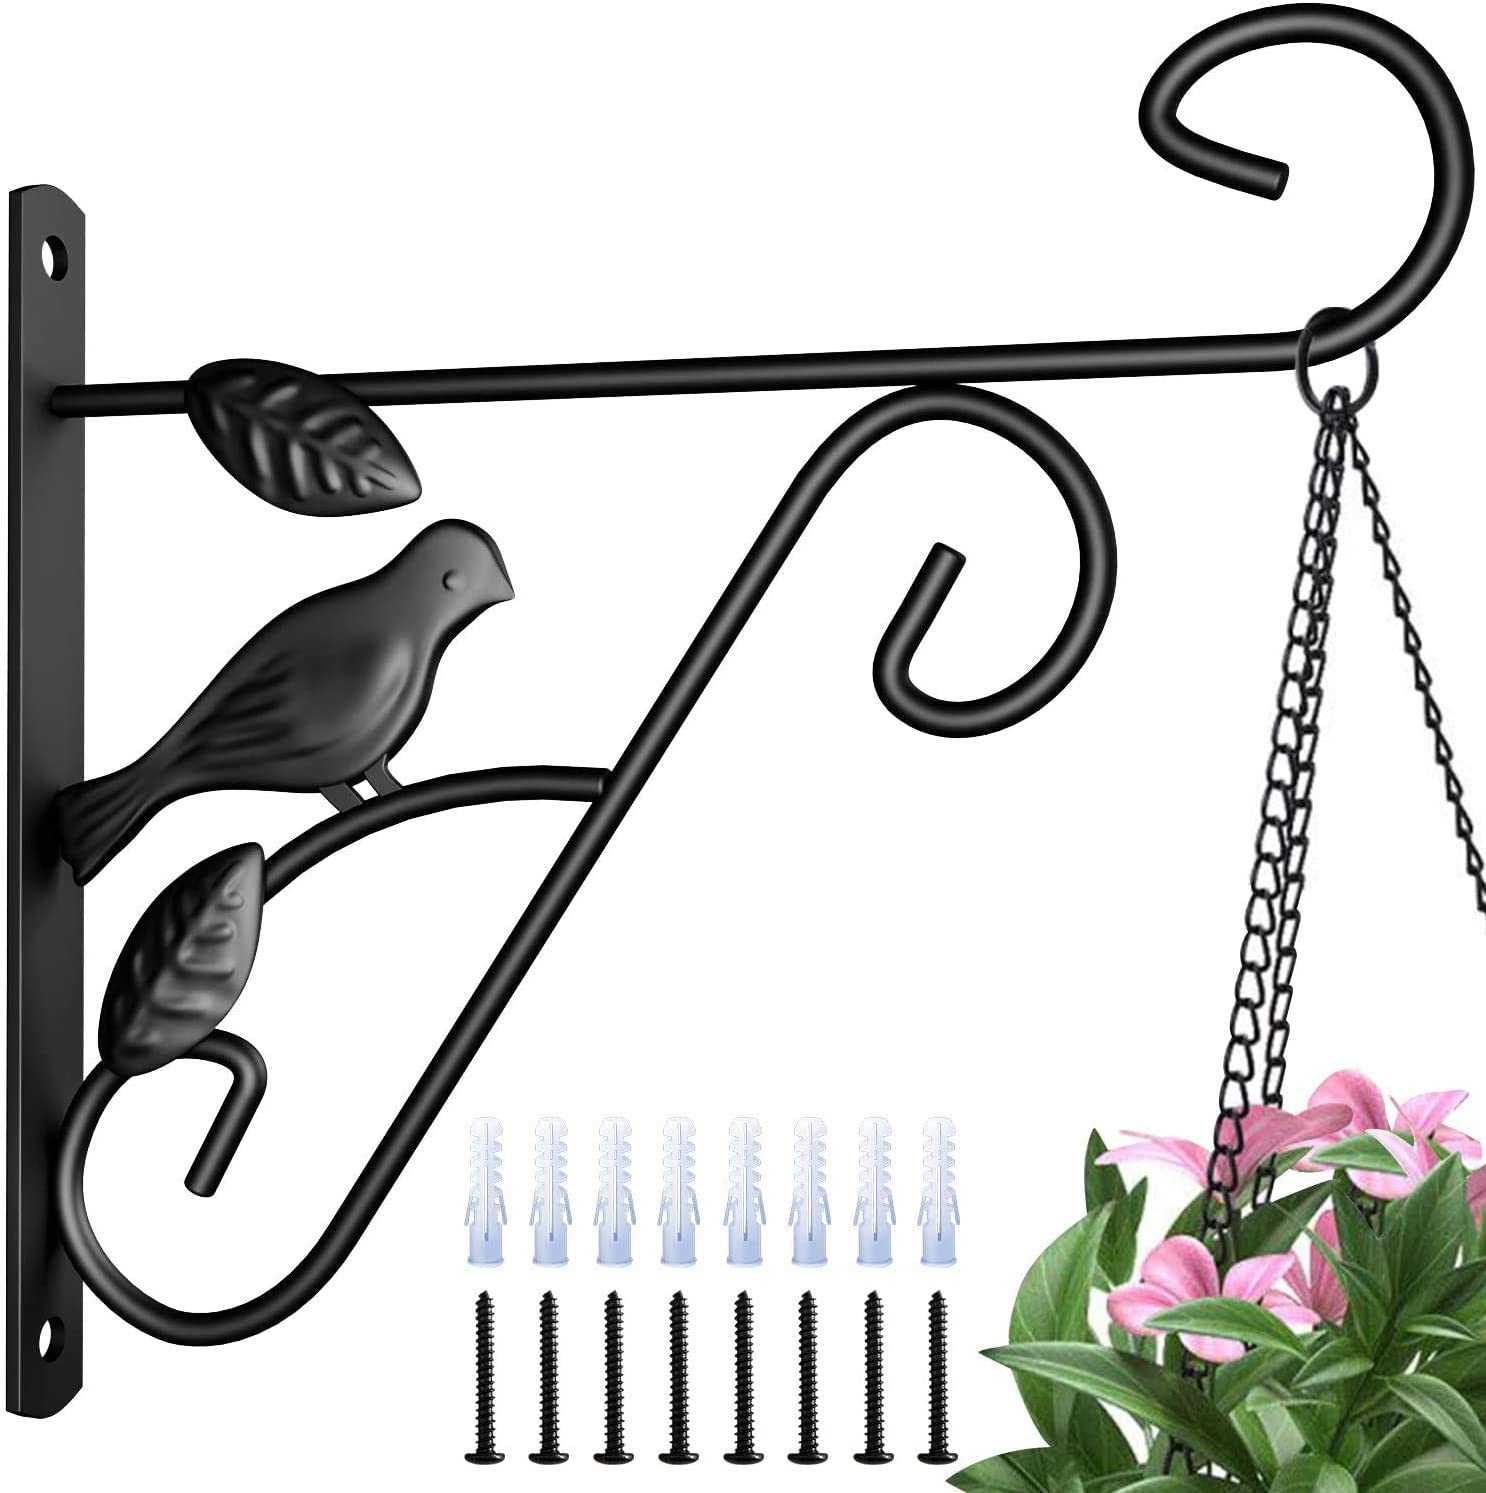 Amagabeli 4 Pack Hanging Plants Bracket 10'' Wall Planter Hooks Hangers Flower Pot Bird Feeder Wind Chimes Lanterns Patio Lawn Garden for Outdoor Indoor Wall Fence Screw Mount Against Door Arm Black